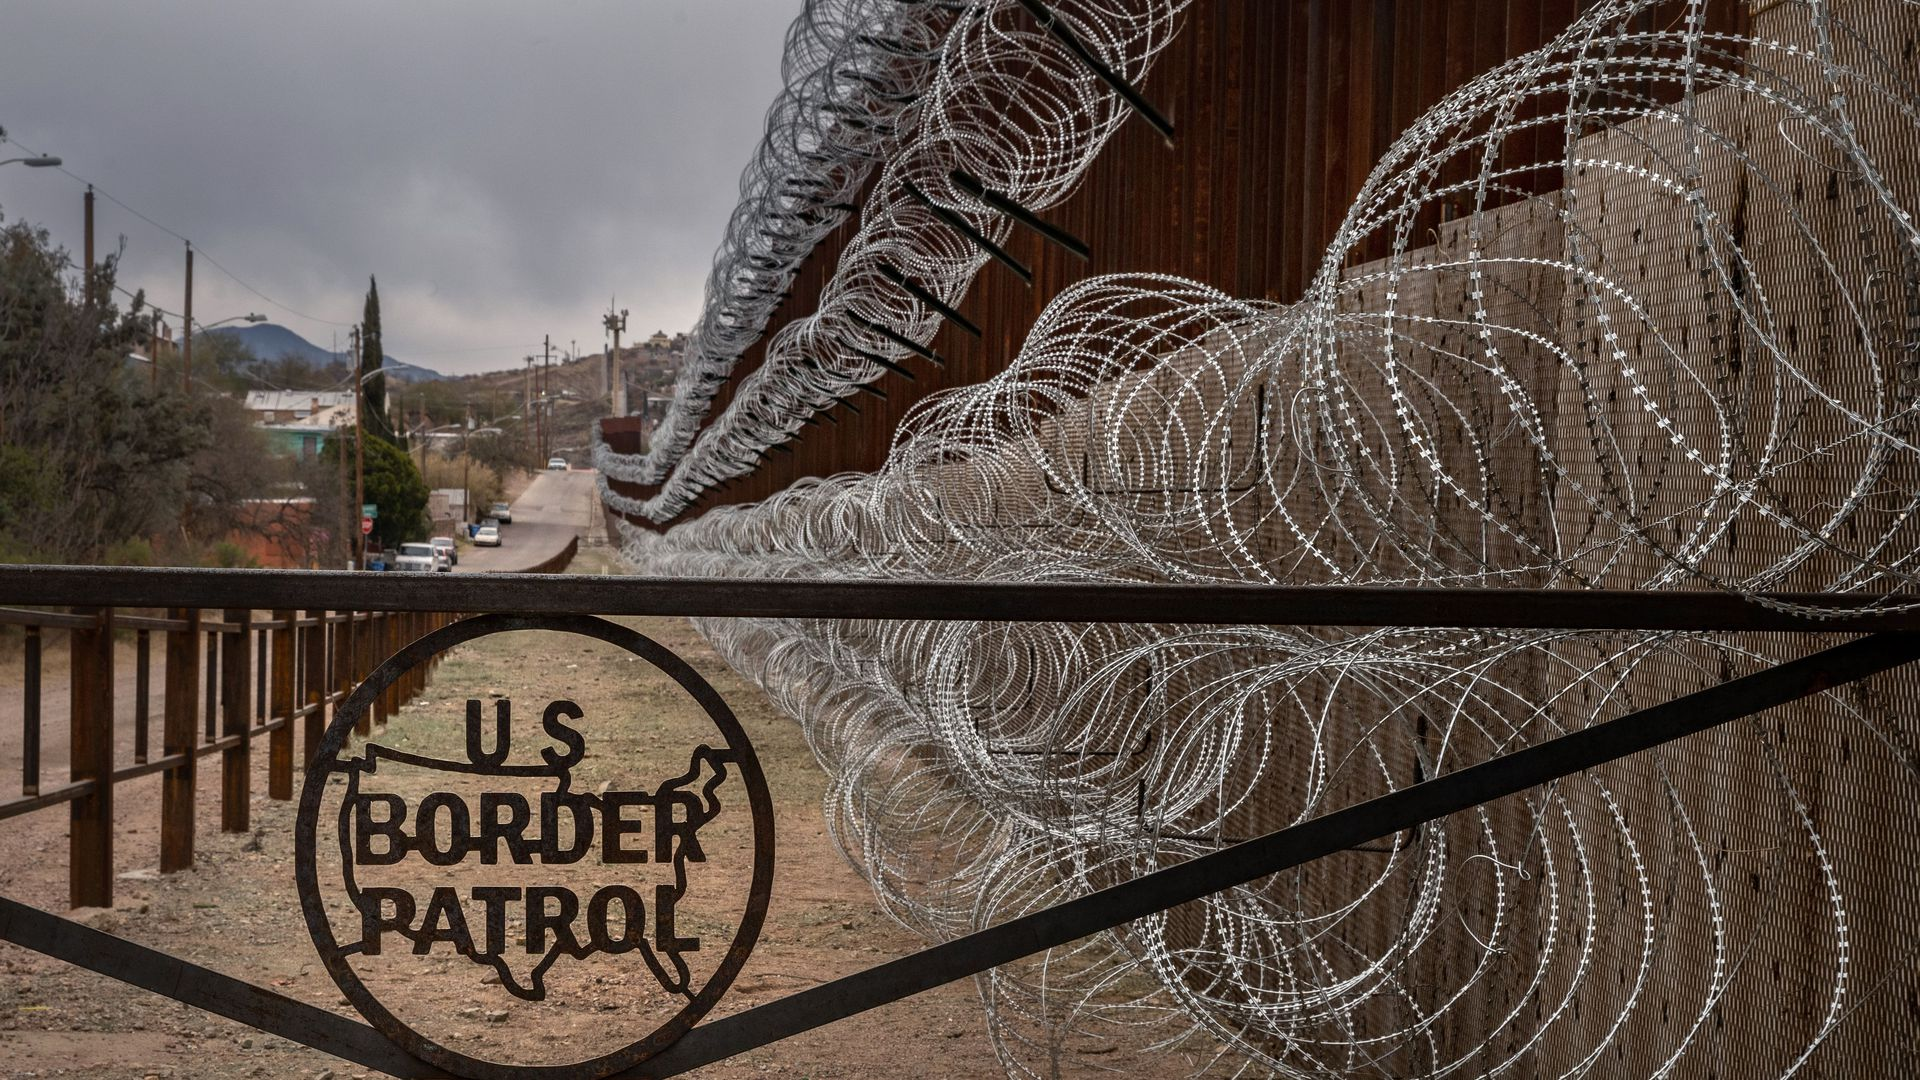 A metal fence marked with the US Border Patrol sign prevents people to get close to the barbed/concertina wire covering the US/Mexico border fence, in Nogales, Arizona, on February 9, 2019.